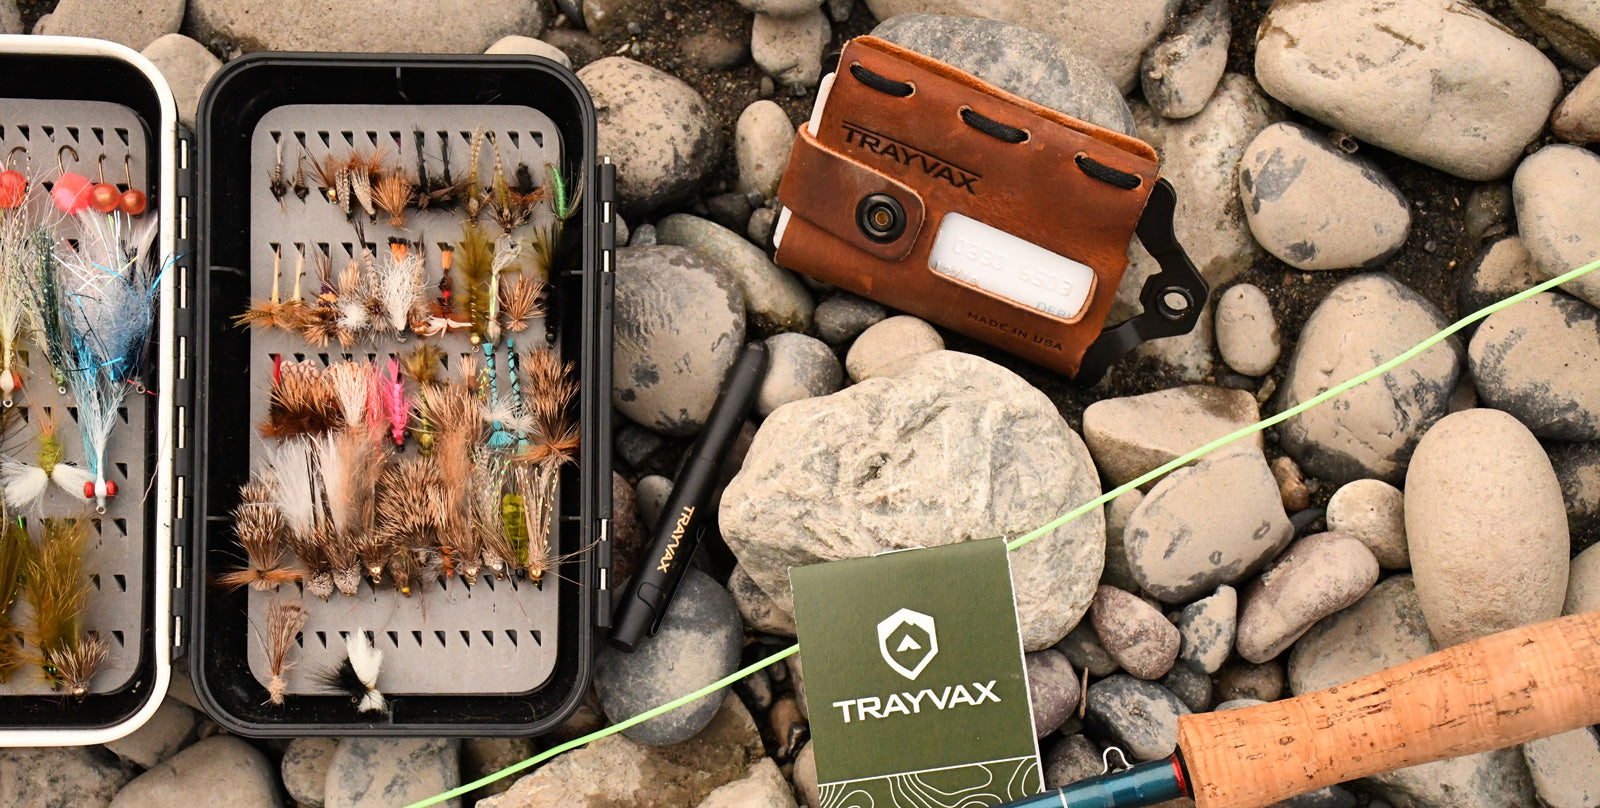 Trayvax has all of the gear you need for your next adventure.